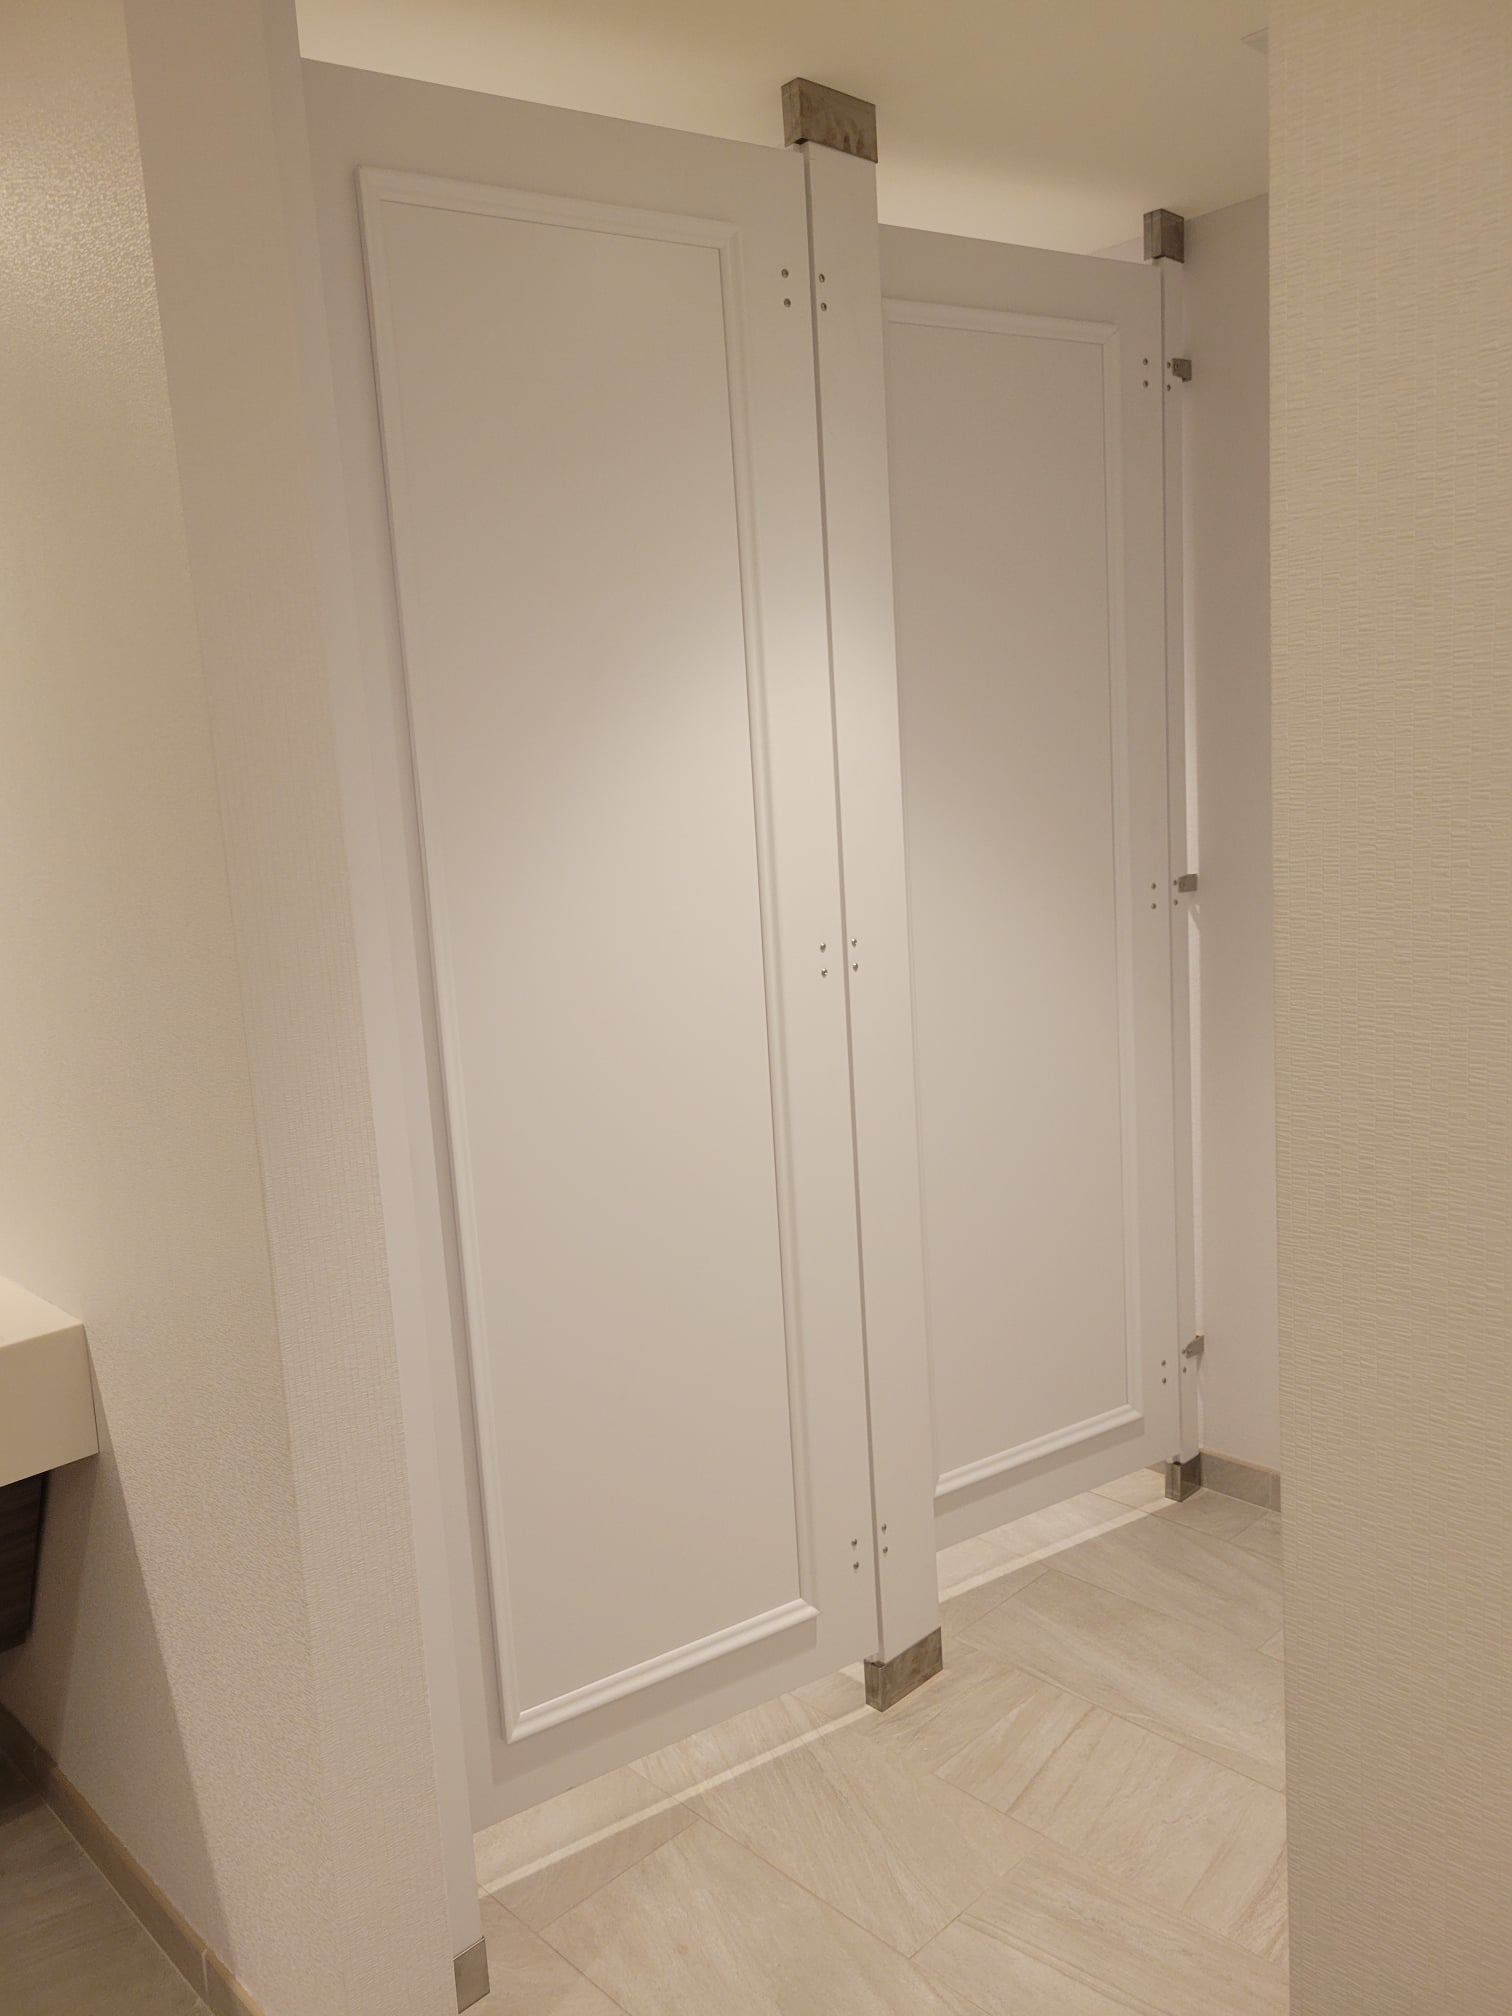 Install of White Toilet Partitions